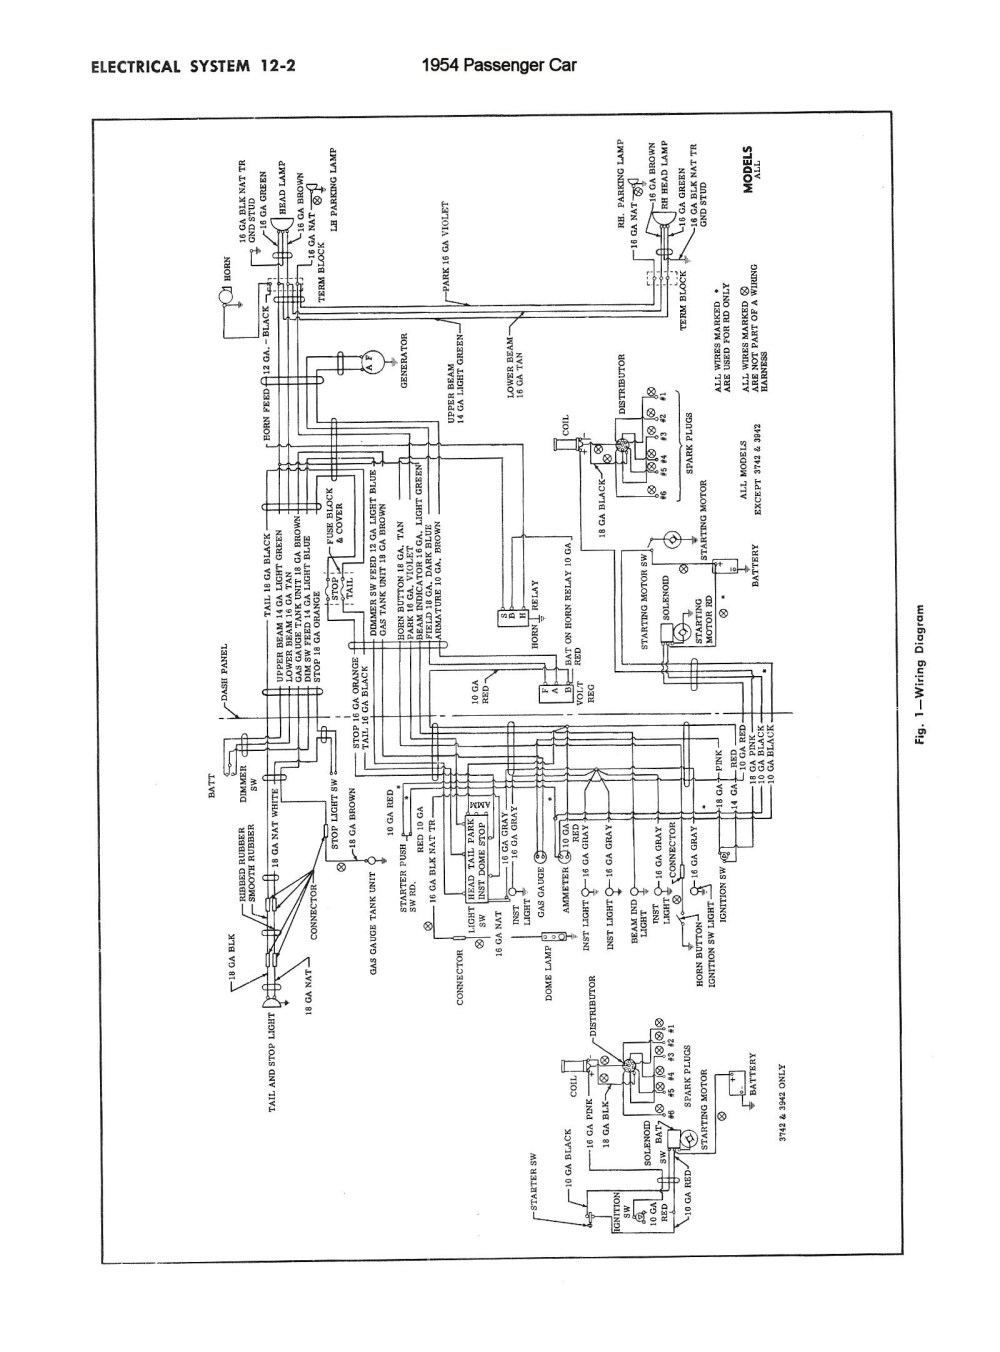 medium resolution of 1951 chevy wiring diagram wiring diagram ignition circuit diagram for the 1947 51 frazer all models